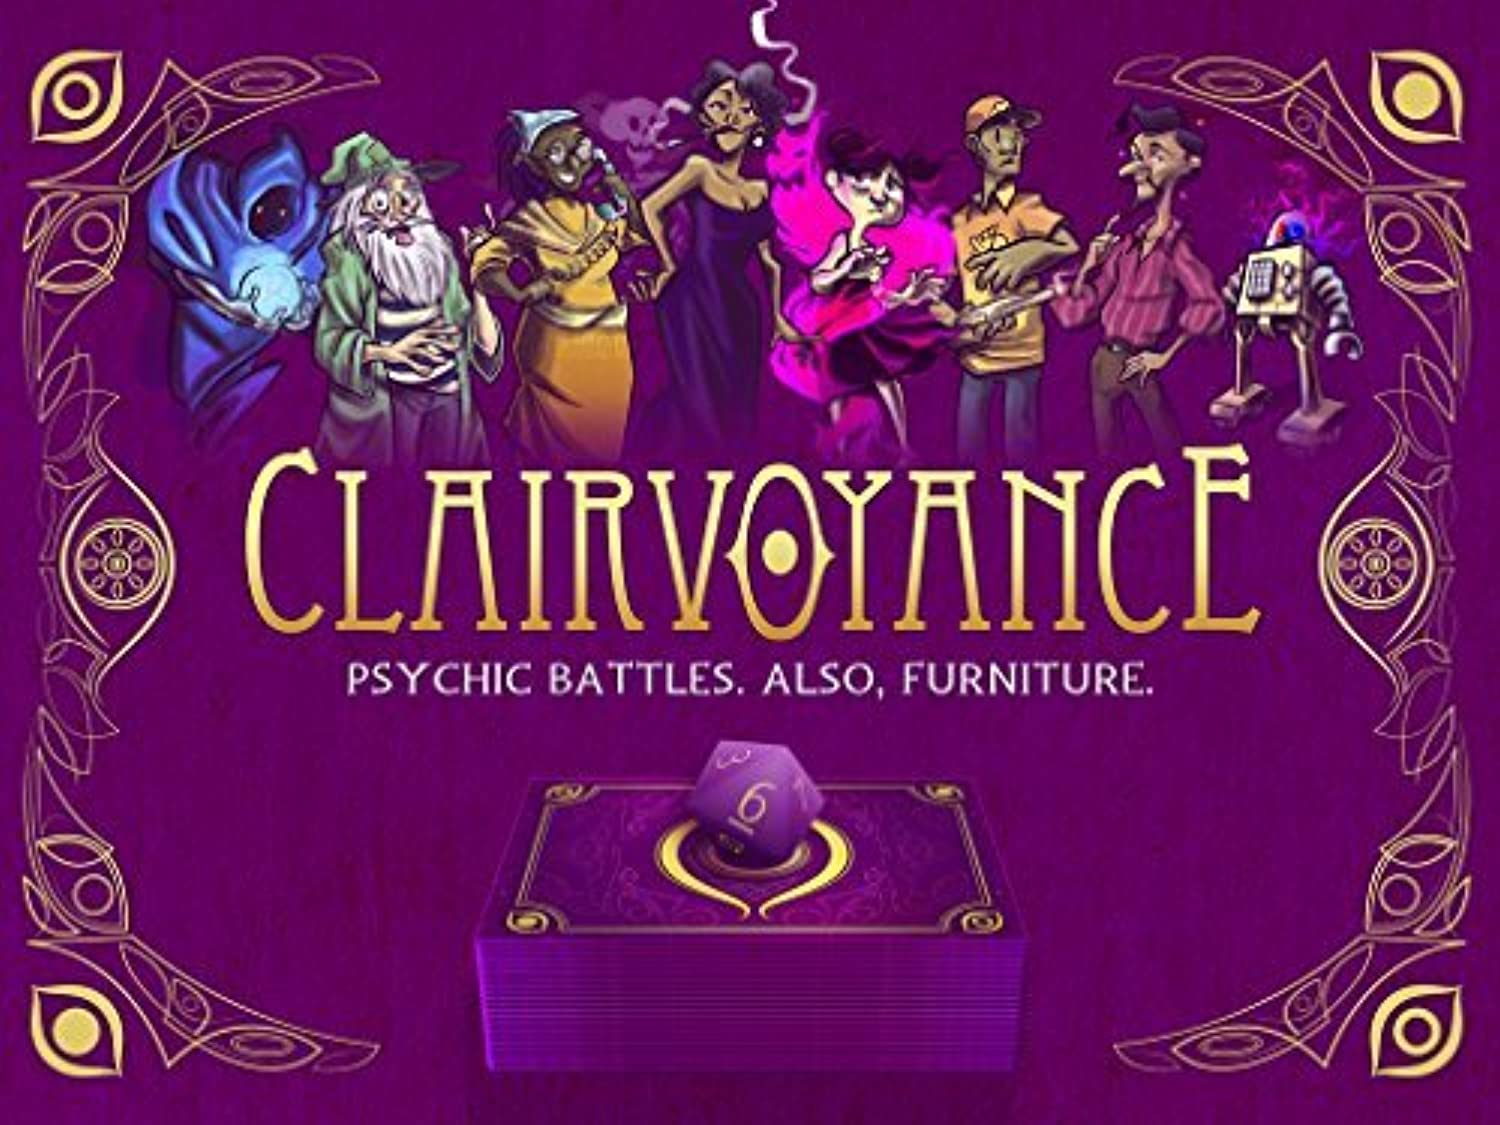 Clairvoyance Card Game by Eye4Games